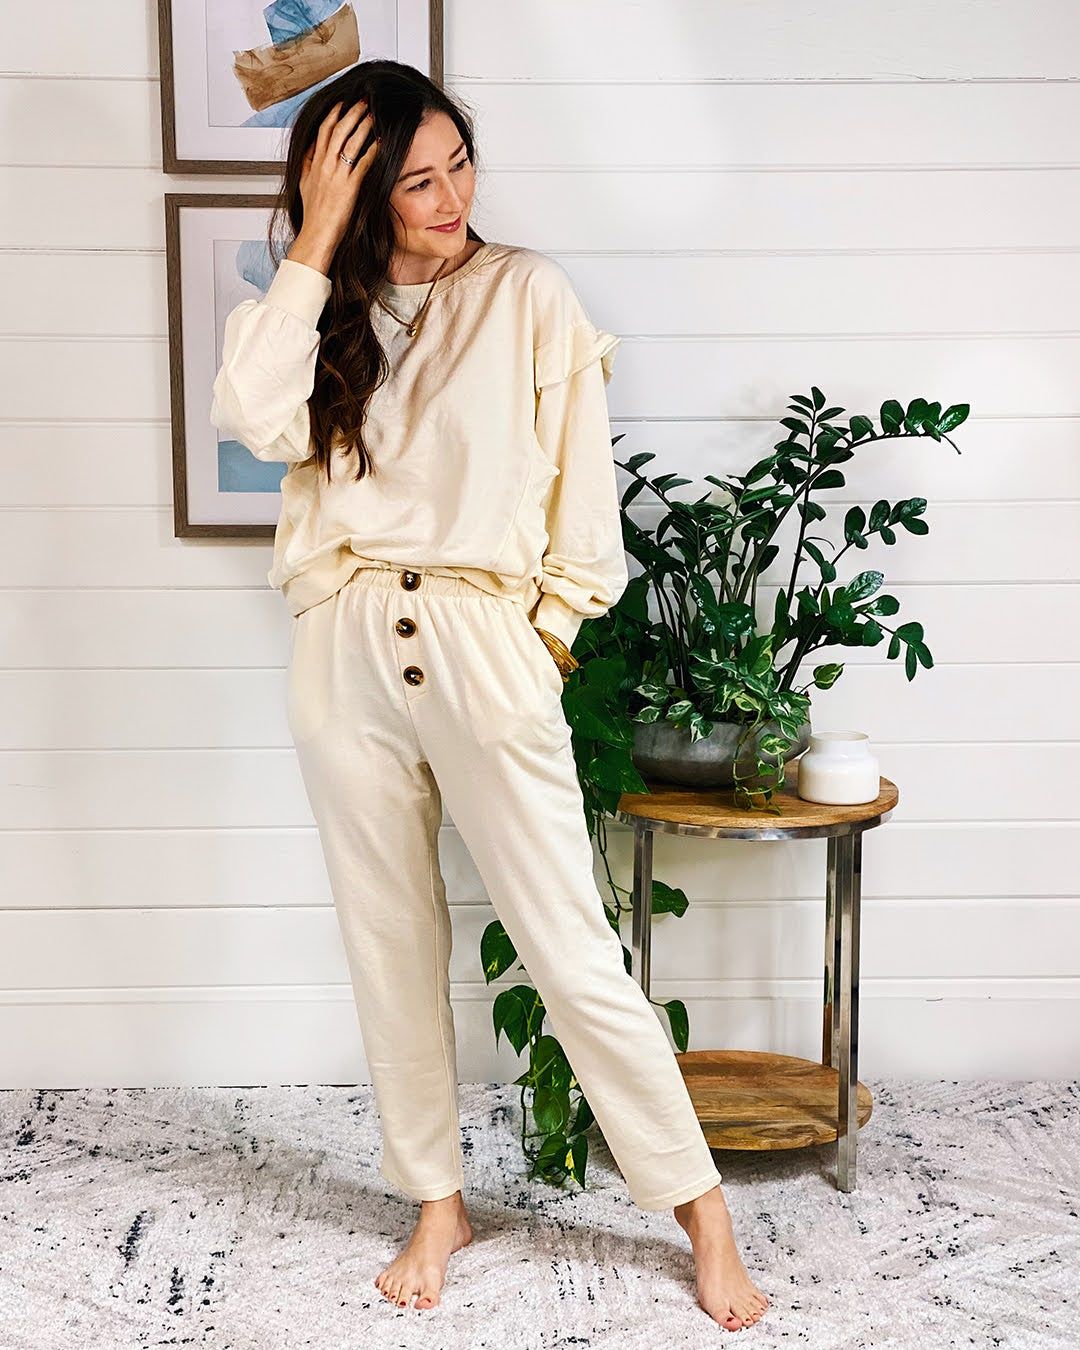 Ruffle Z SUPPLY pullover in ivory and button, paperbag waist joggers in ivory